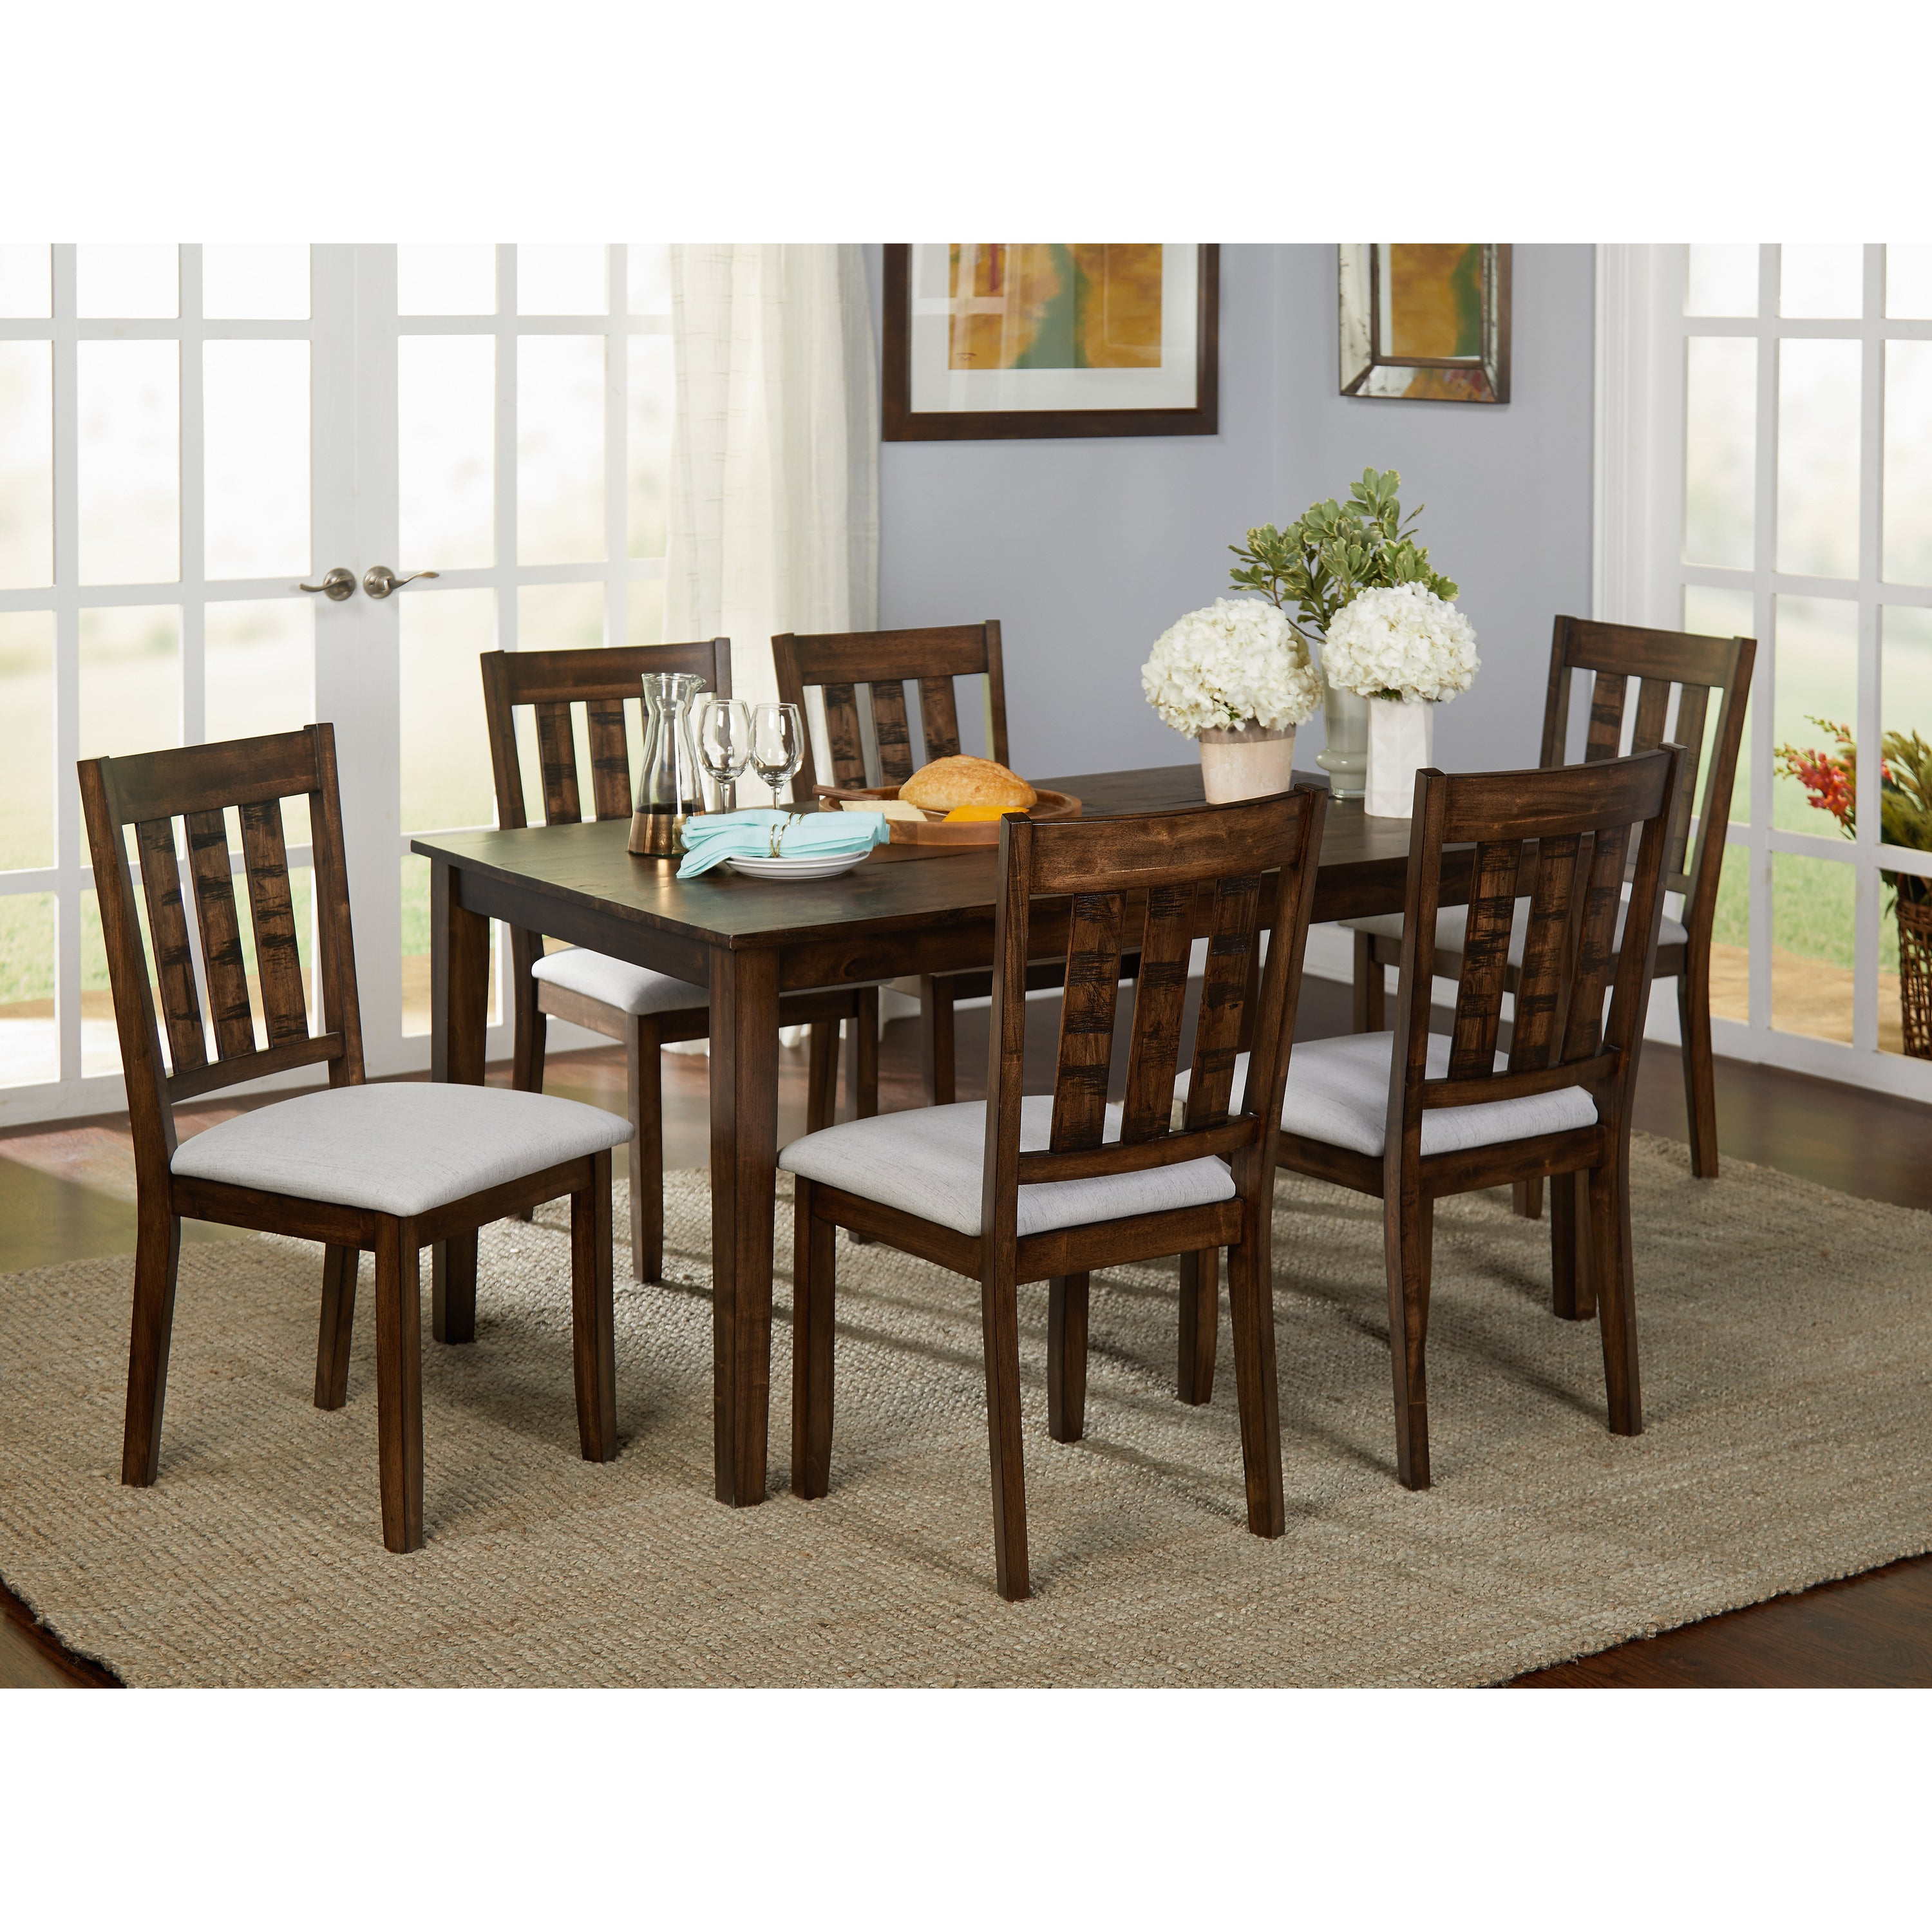 Newest Sheetz 3 Piece Counter Height Dining Sets Pertaining To Buy Kitchen & Dining Room Sets Online At Overstock (View 15 of 25)